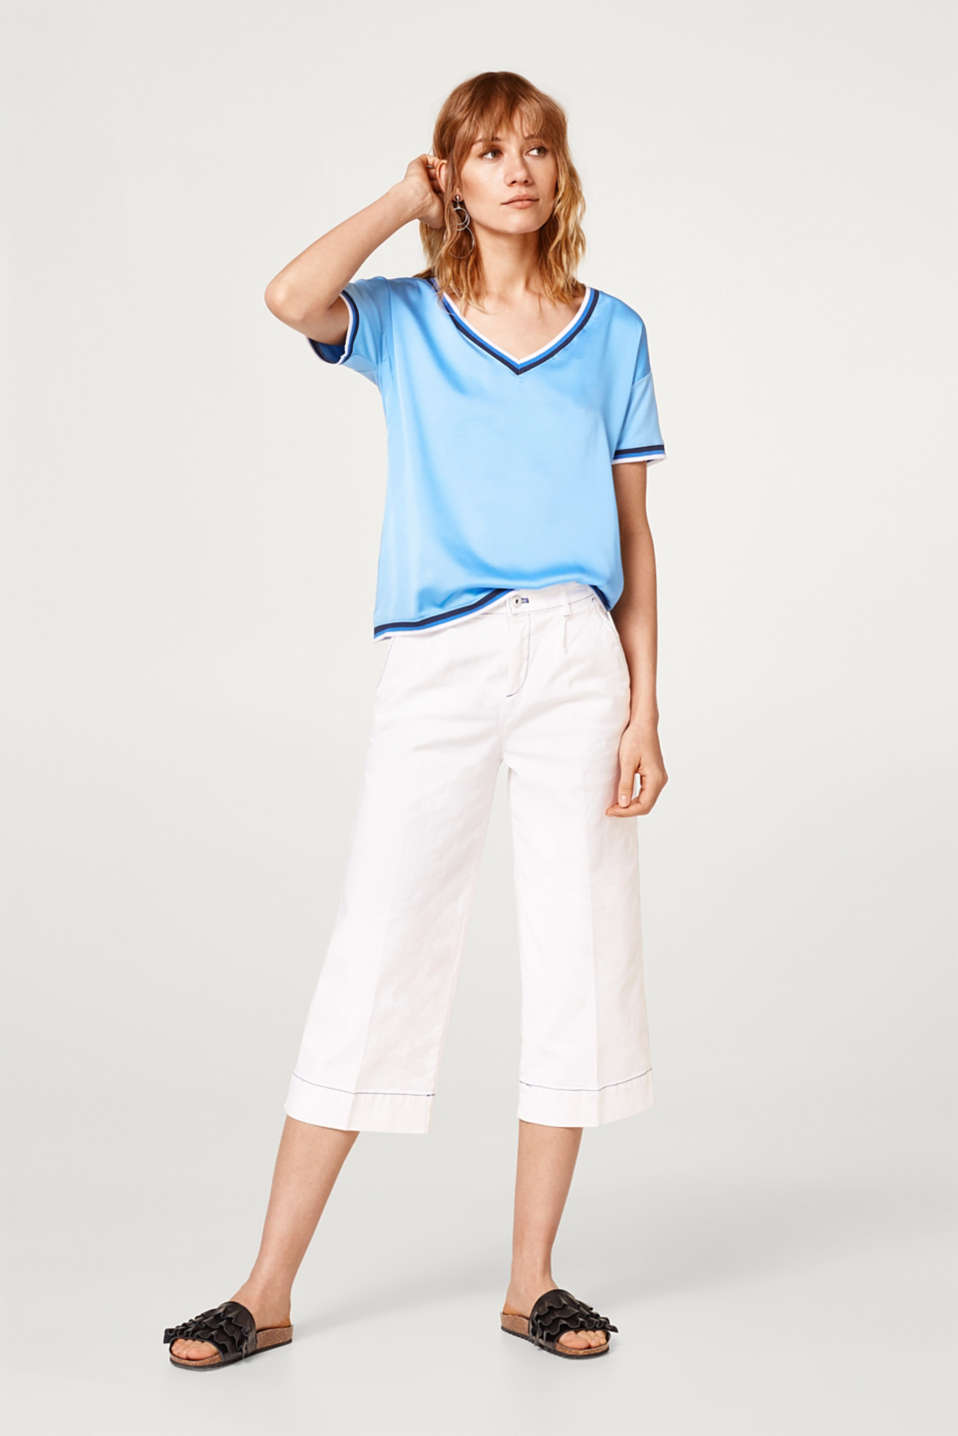 Silky material mix T-shirt in a tennis style